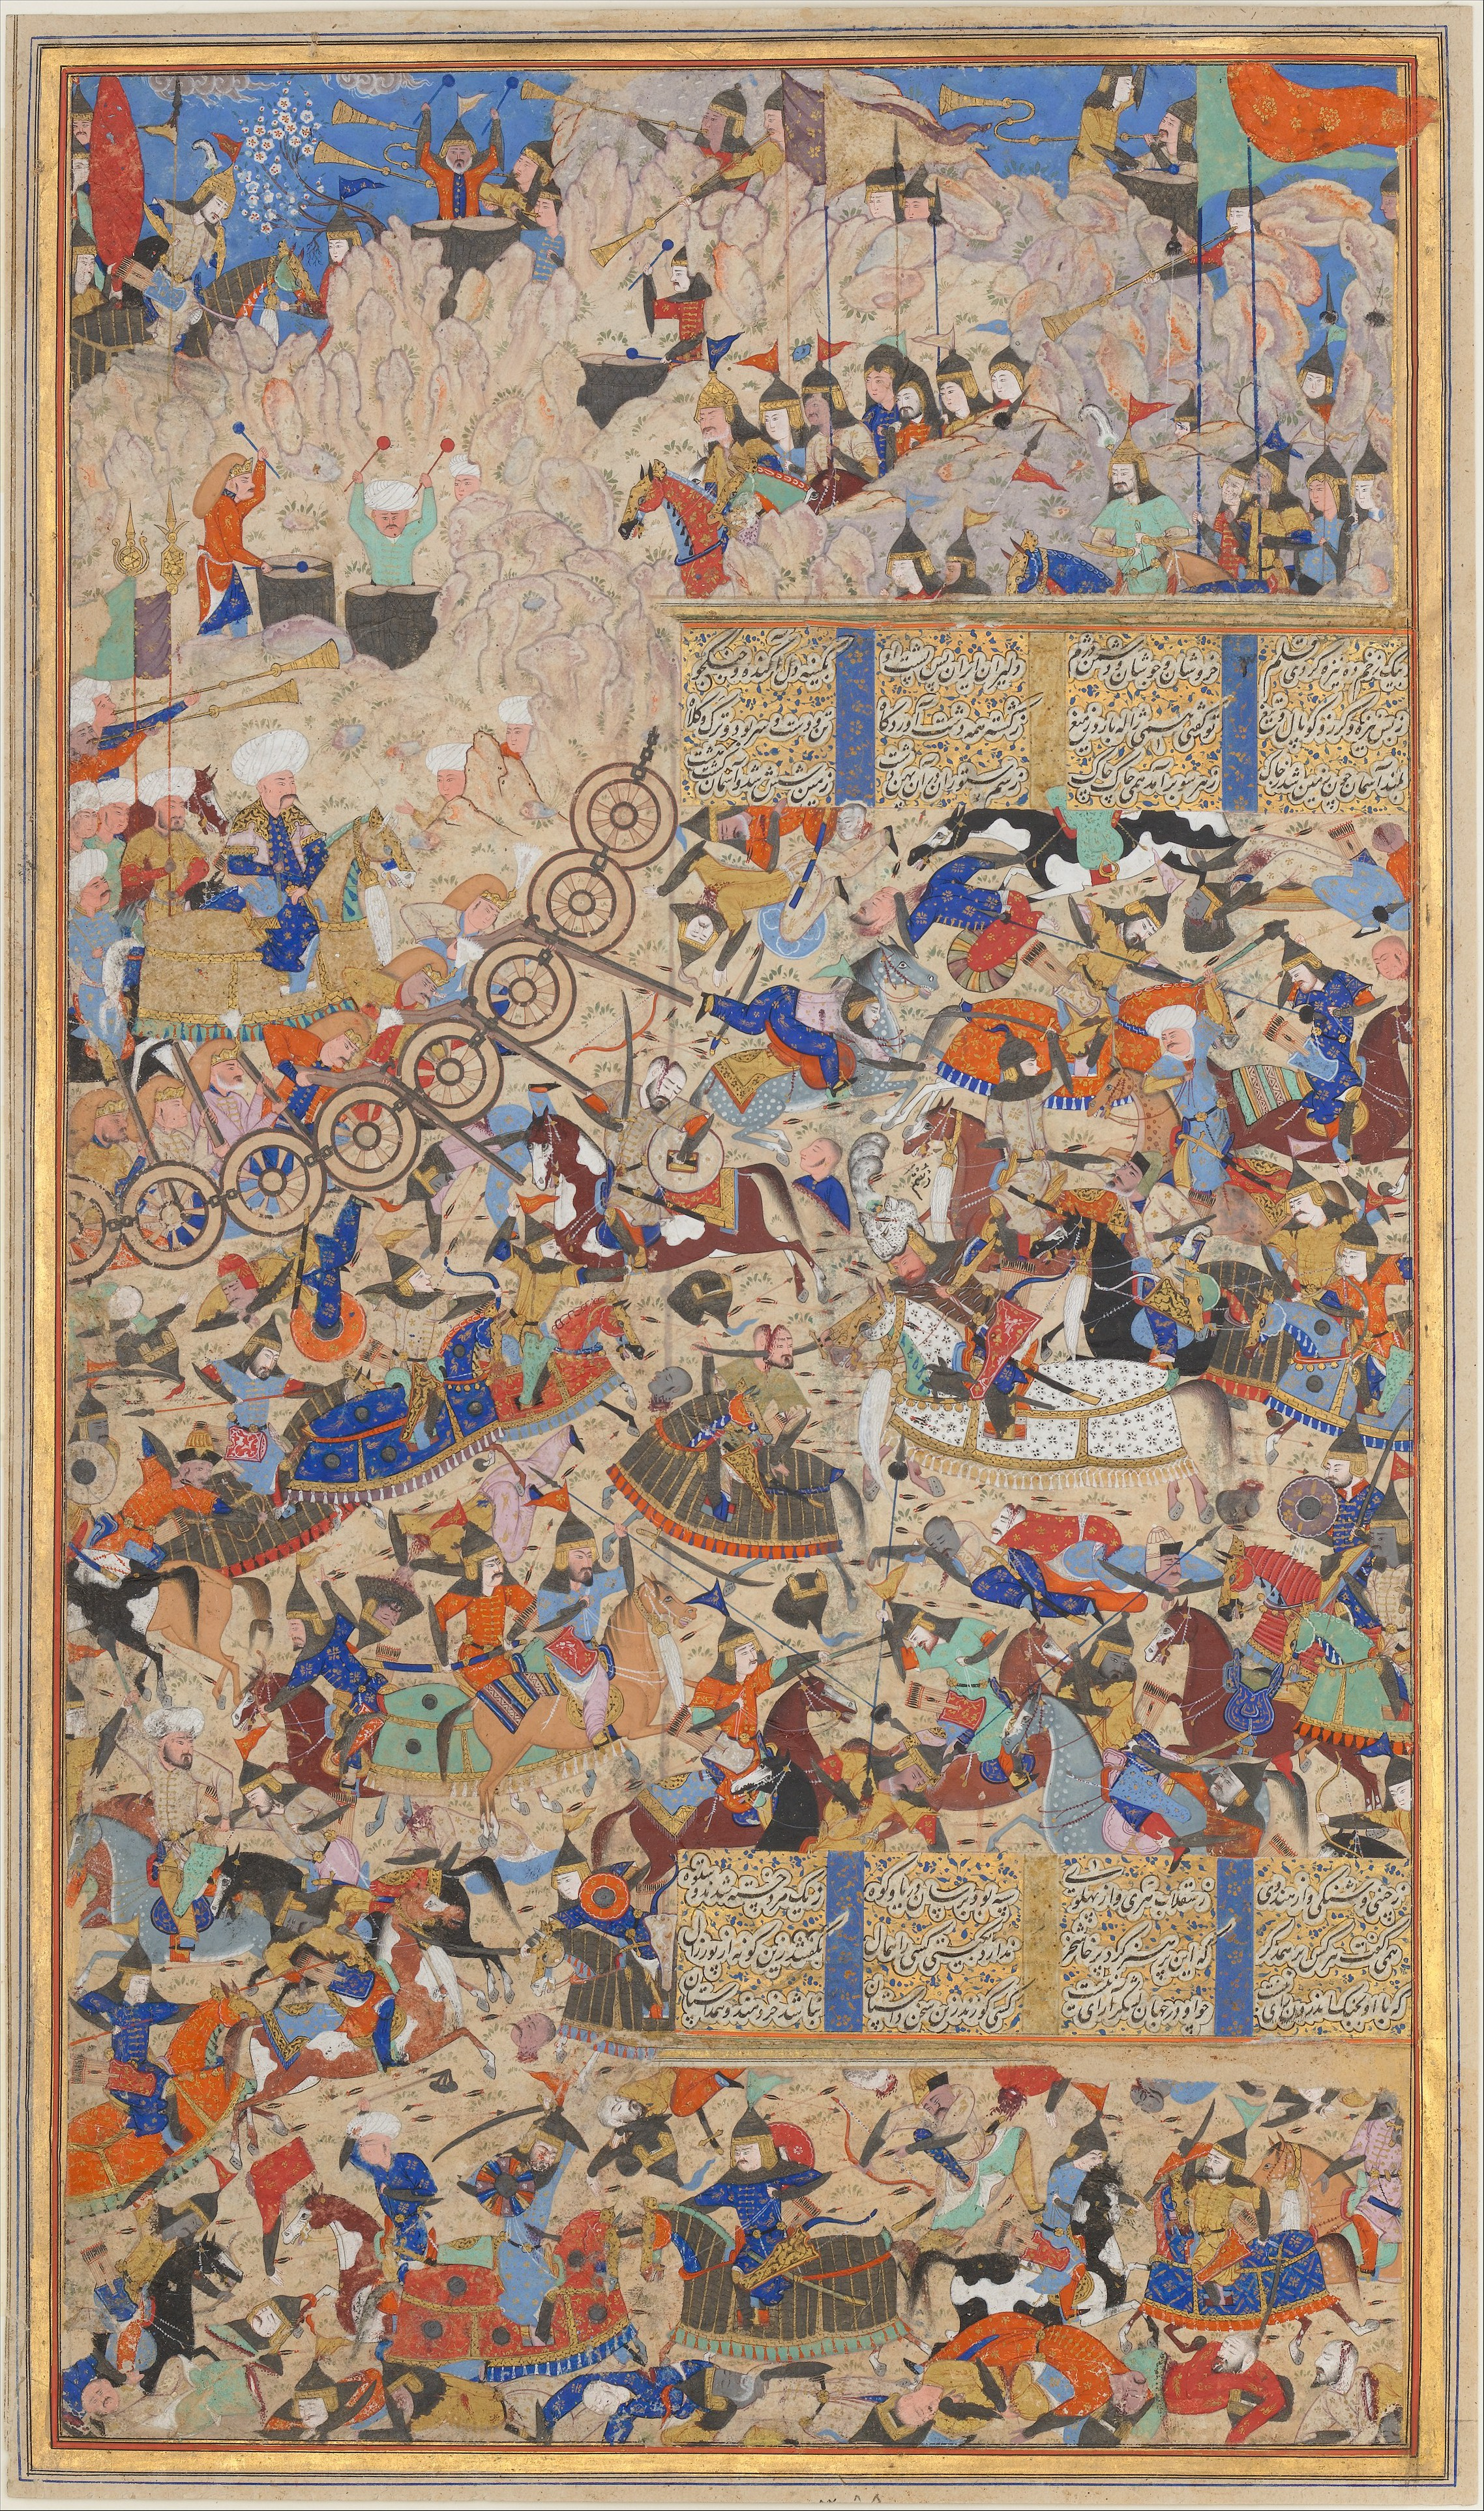 Battle Between Iranians and Turanians, illustration of the Book of Kings by Ferdawsi, cr. 1562–83, Shiraz, Persia